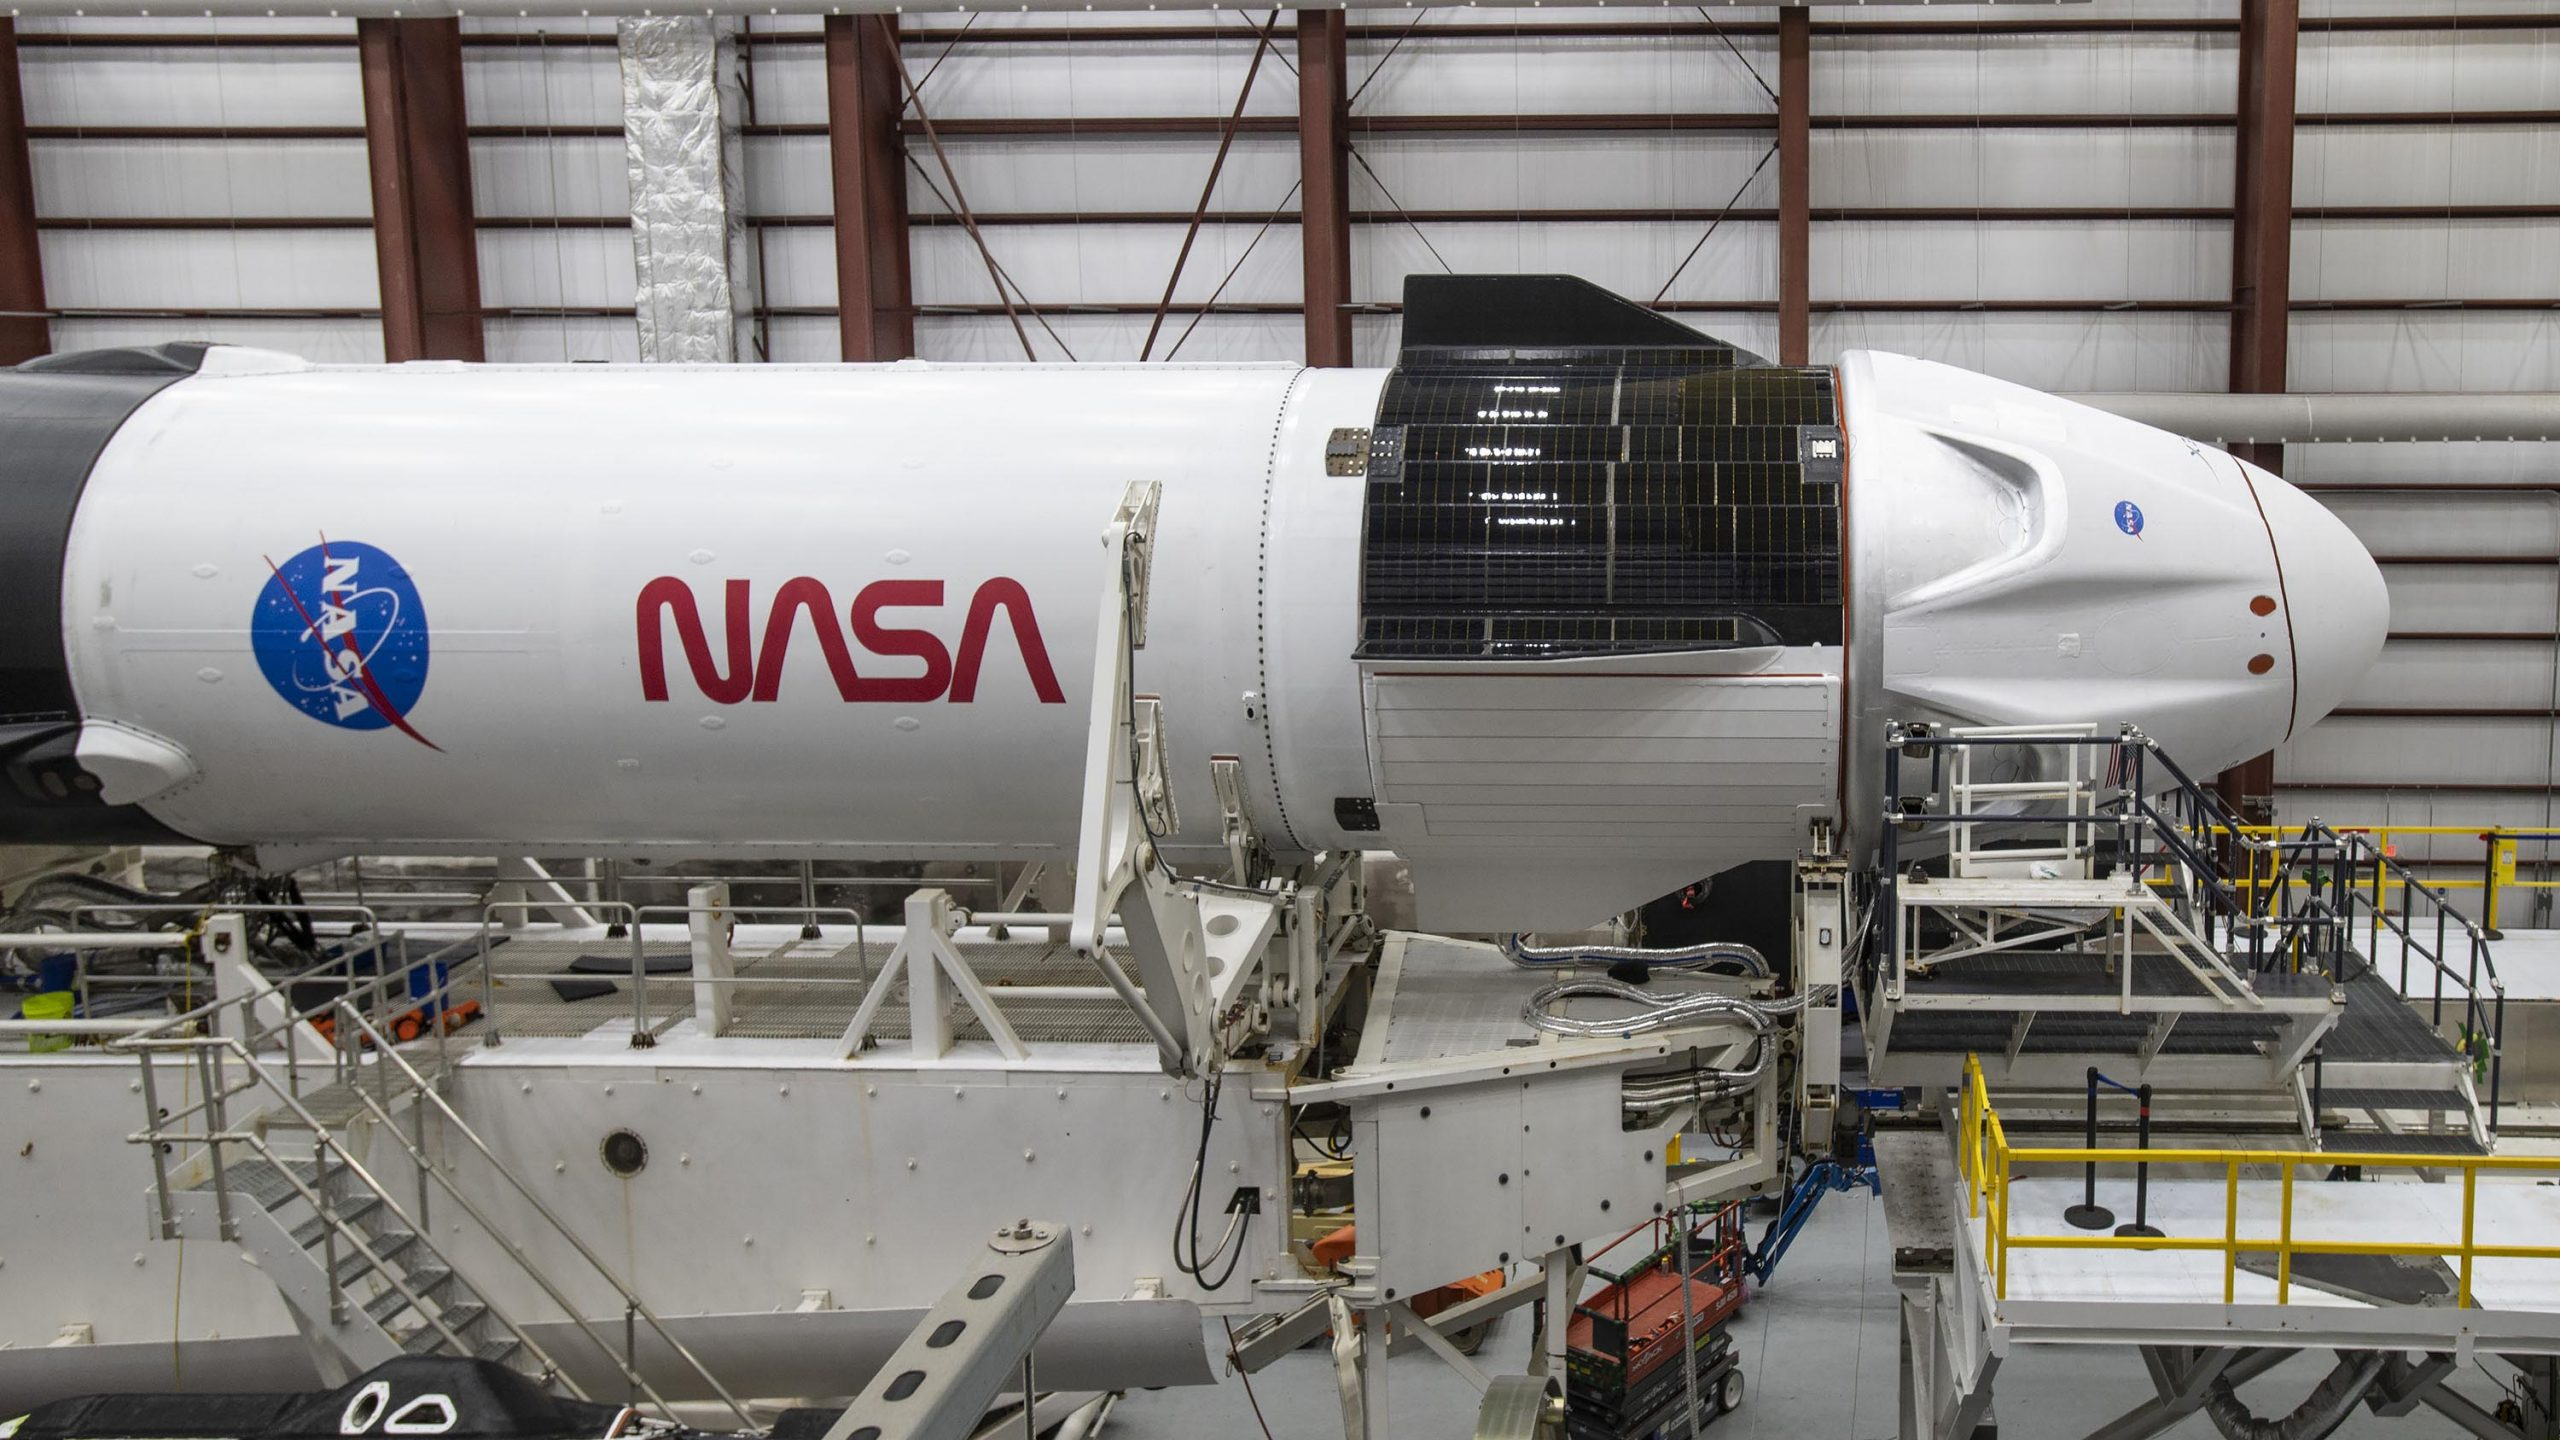 SpaceX NASA Crew 1 Resilience Dragon worm header